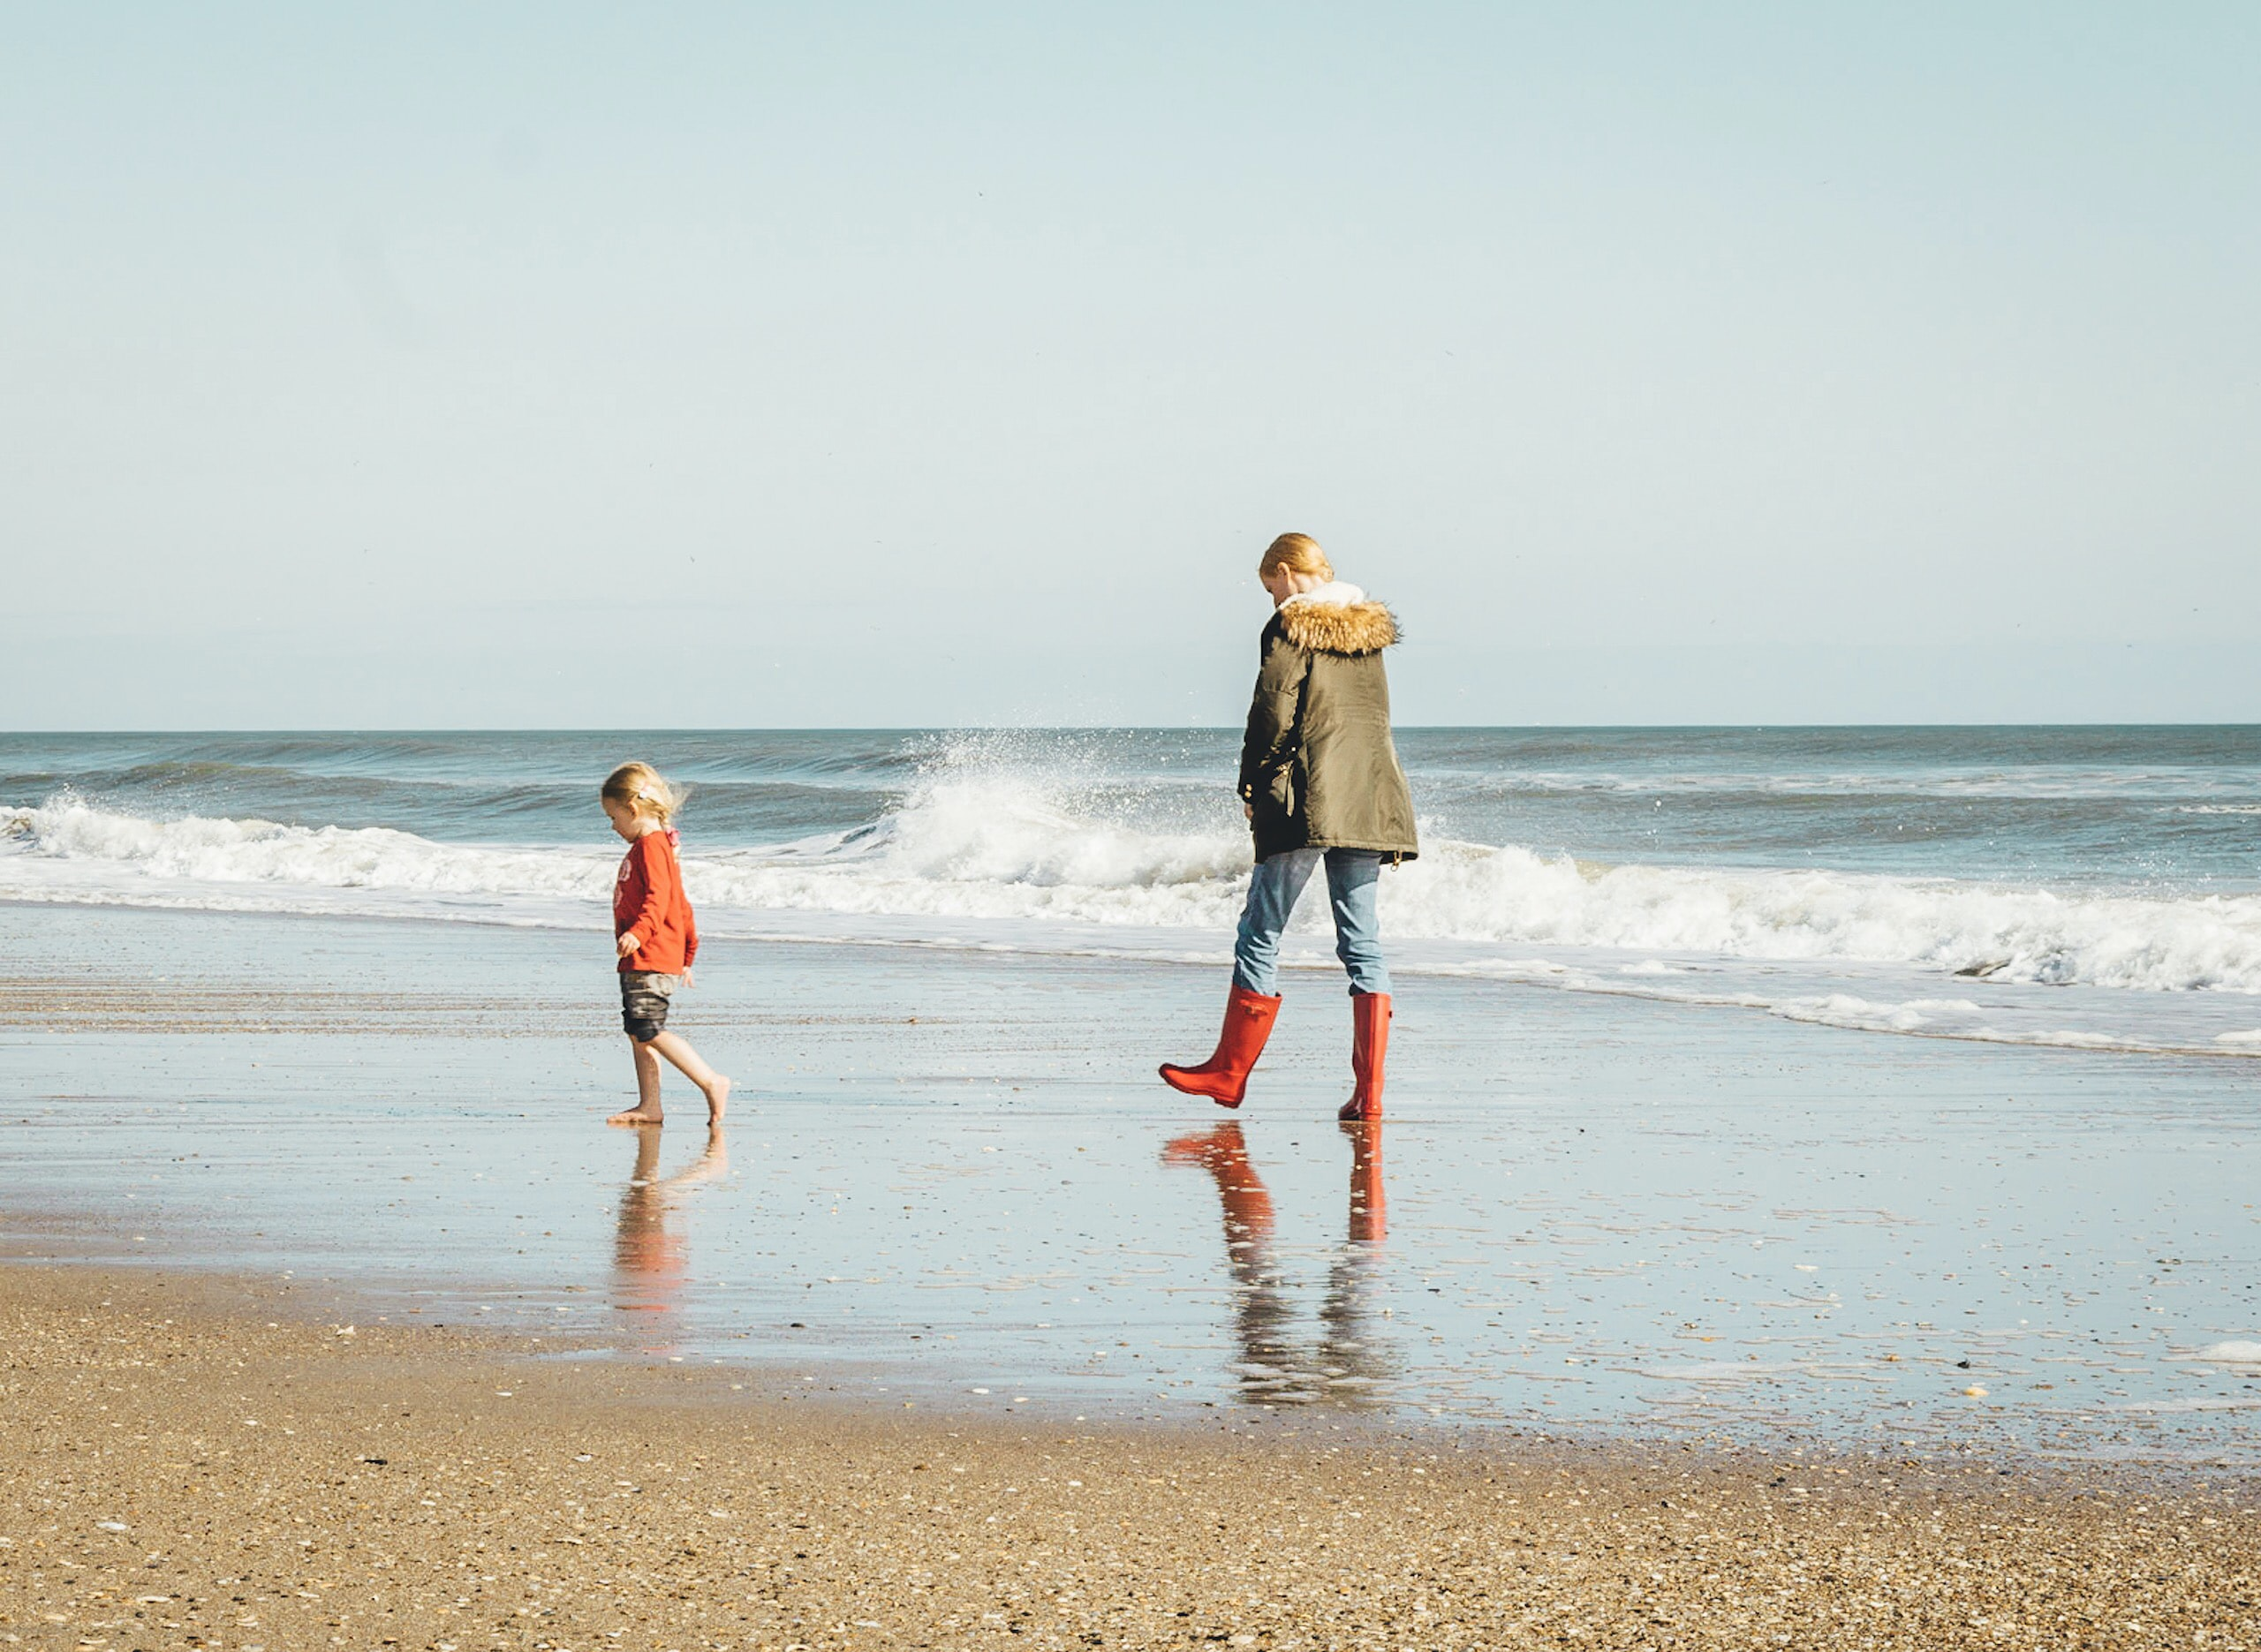 woman and child standing on seashore